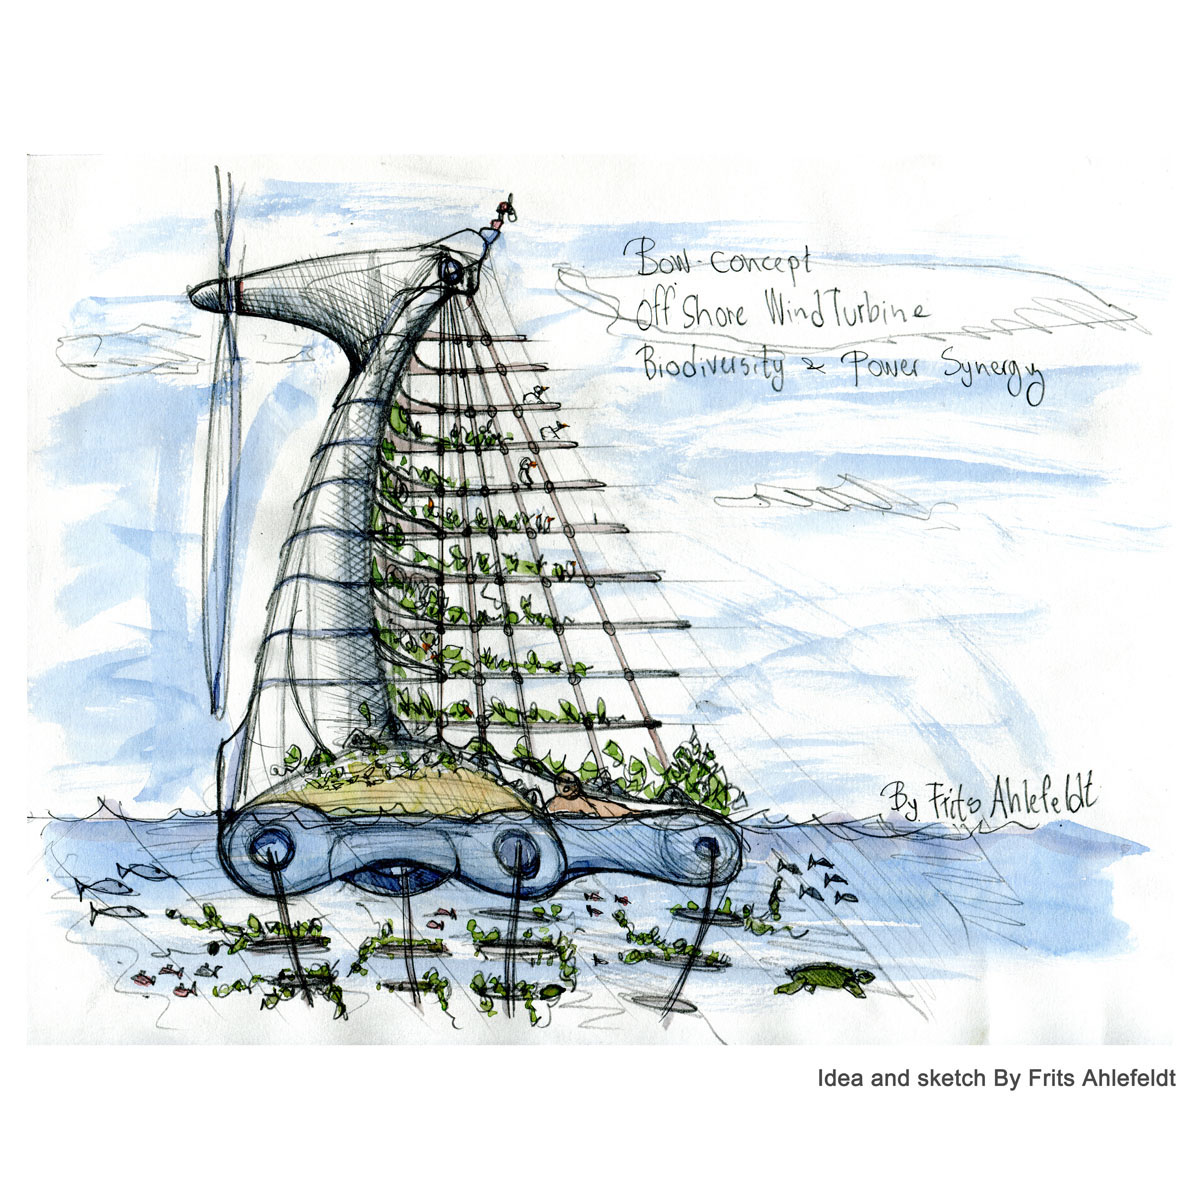 Concept and sketch: Bow off shore wind turbine generating power for remote areas and supporting biodiversity Concept sketch watercolor and pencil. By Frits Ahlefeldt